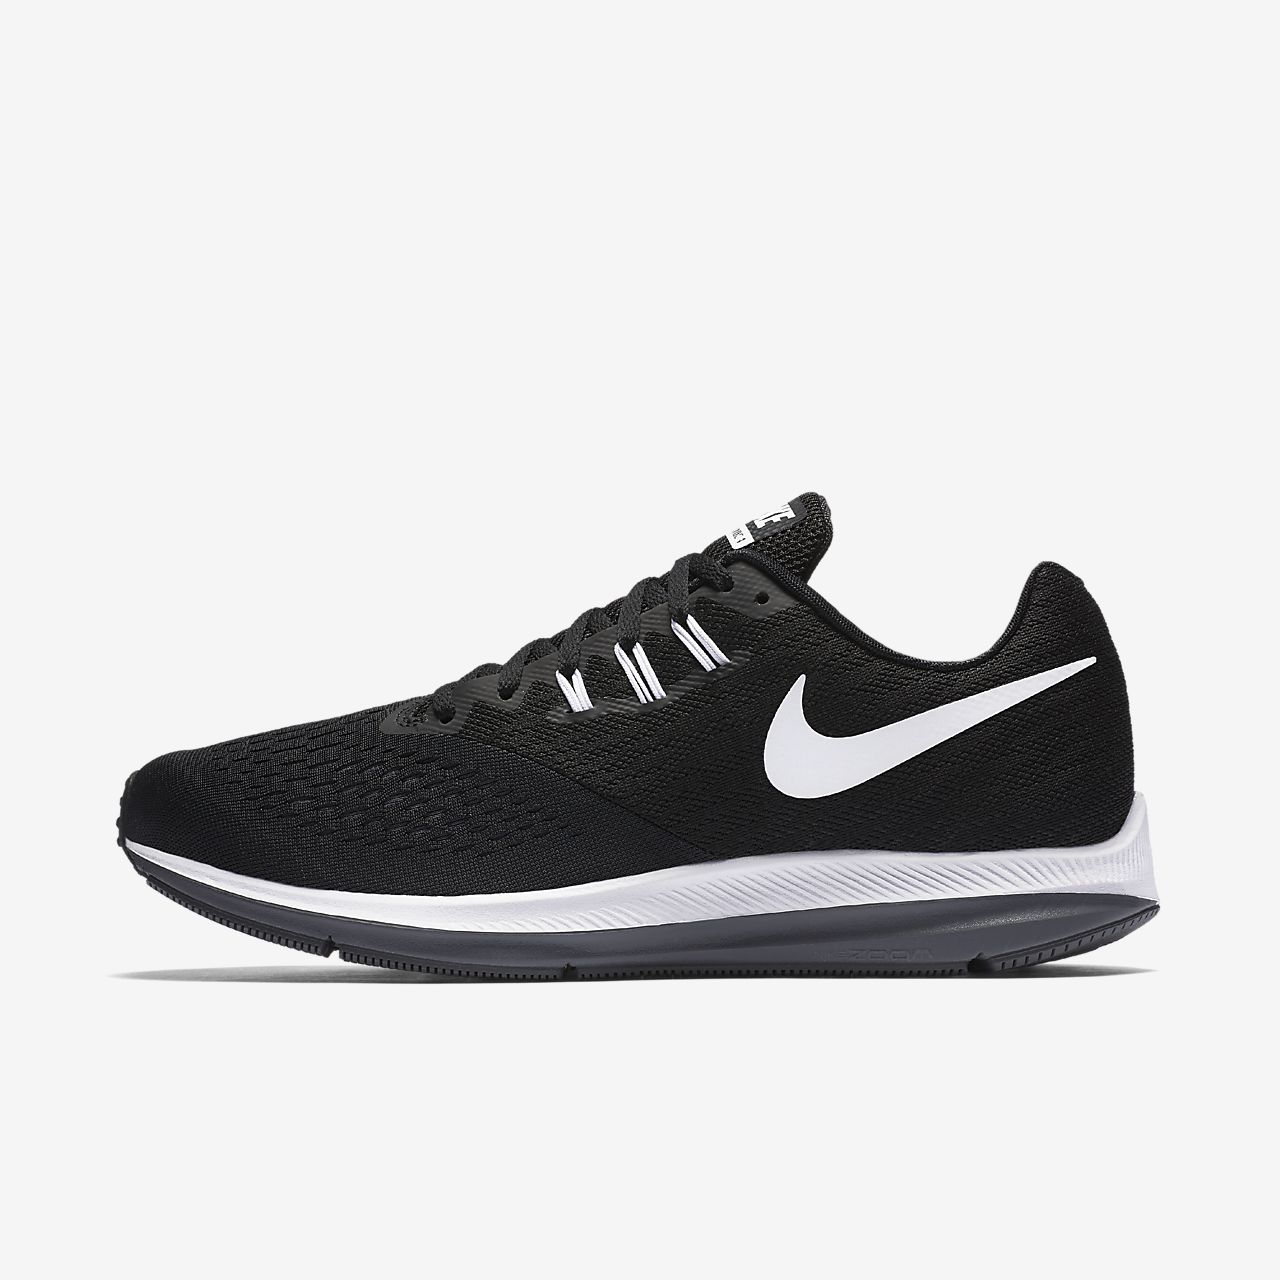 Nike Men's Air Zoom Winflo 5 Running Sneakers from Finish Line u6MXU5DpJ